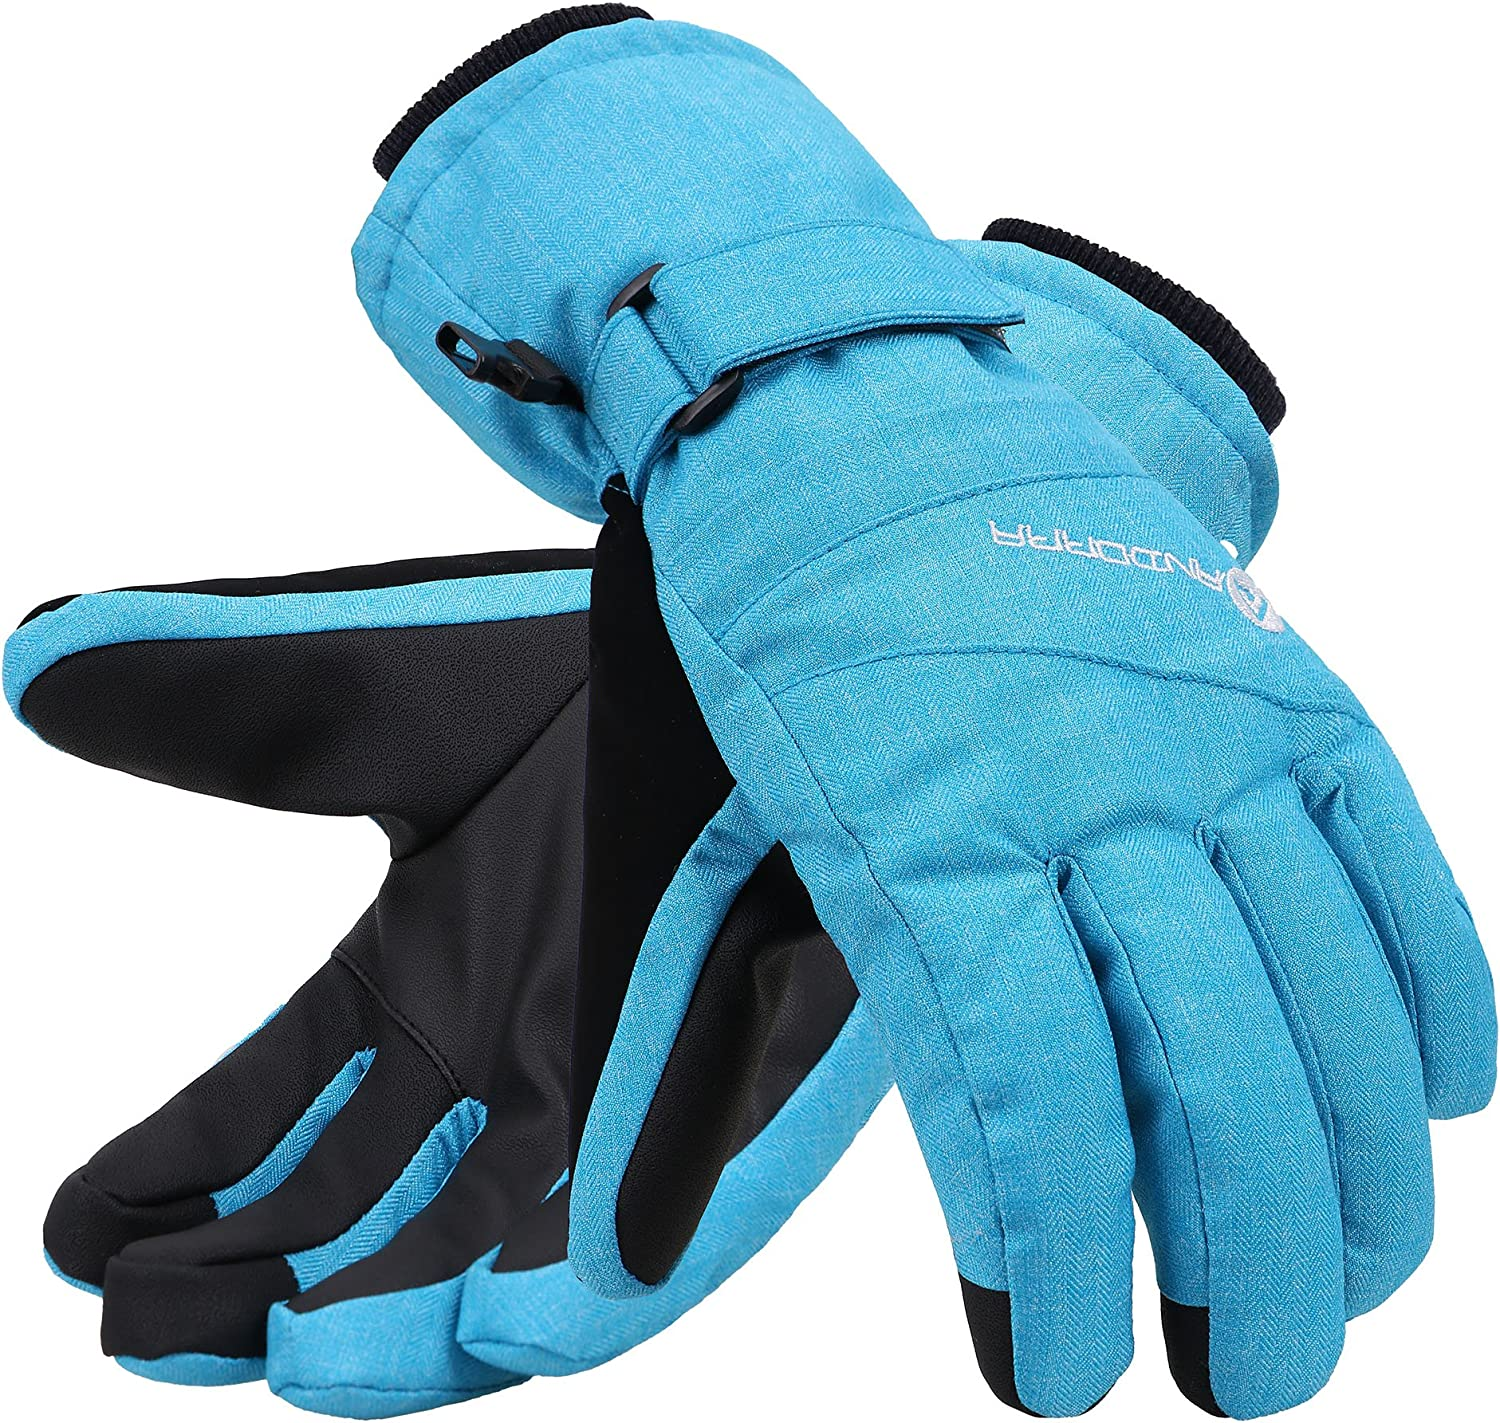 ANDORRA Import Women's Waterproof Selling and selling Touchscreen Ski Gloves